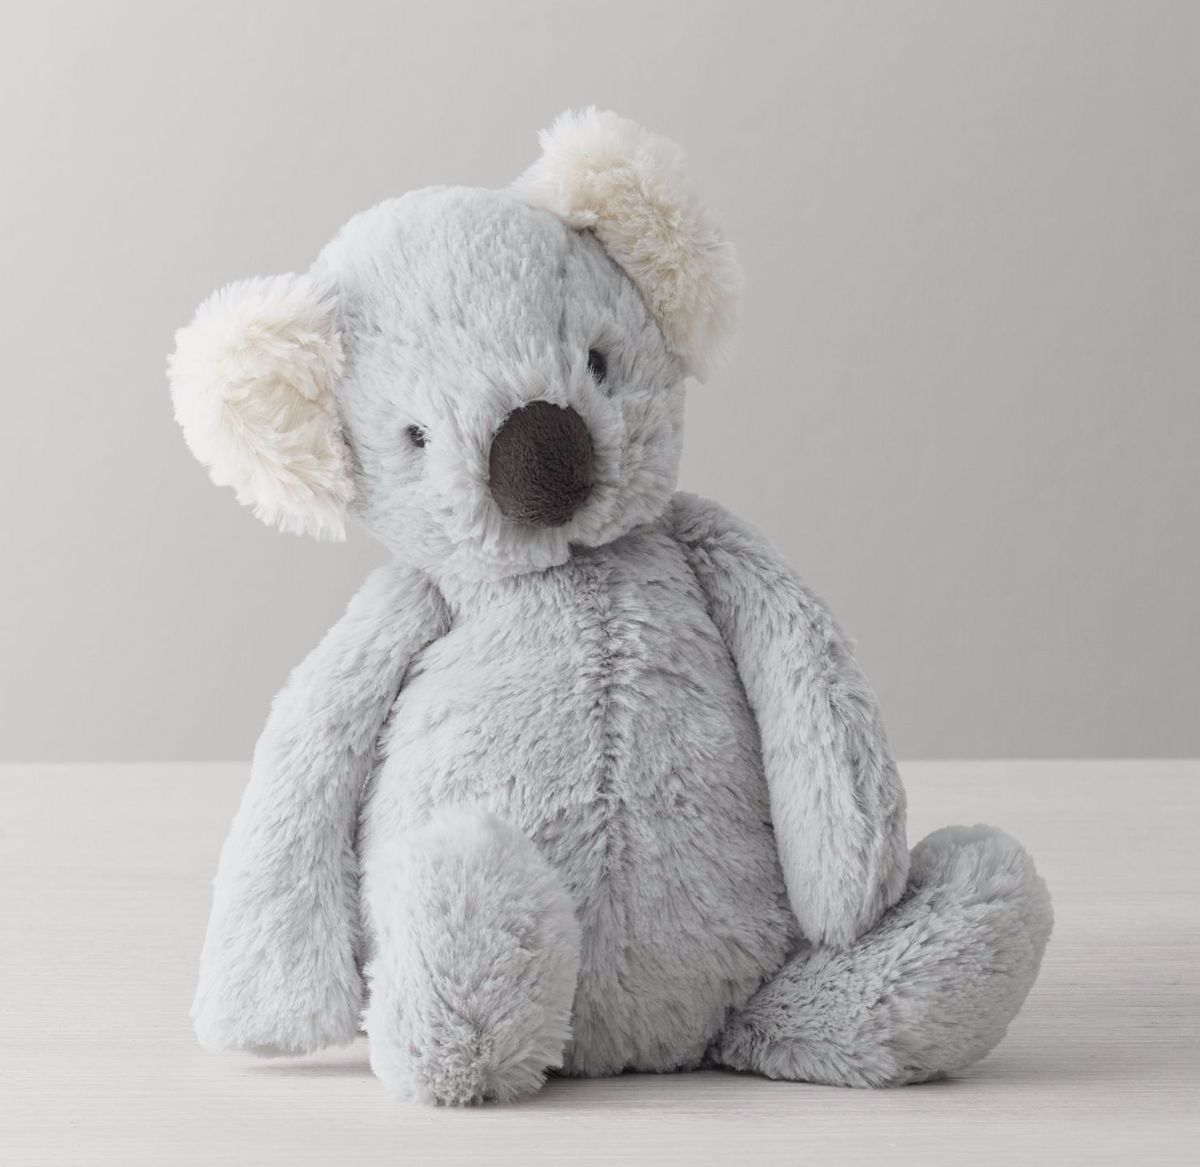 Pin by Julie Dougherty on Kids Room Baby stuffed animals